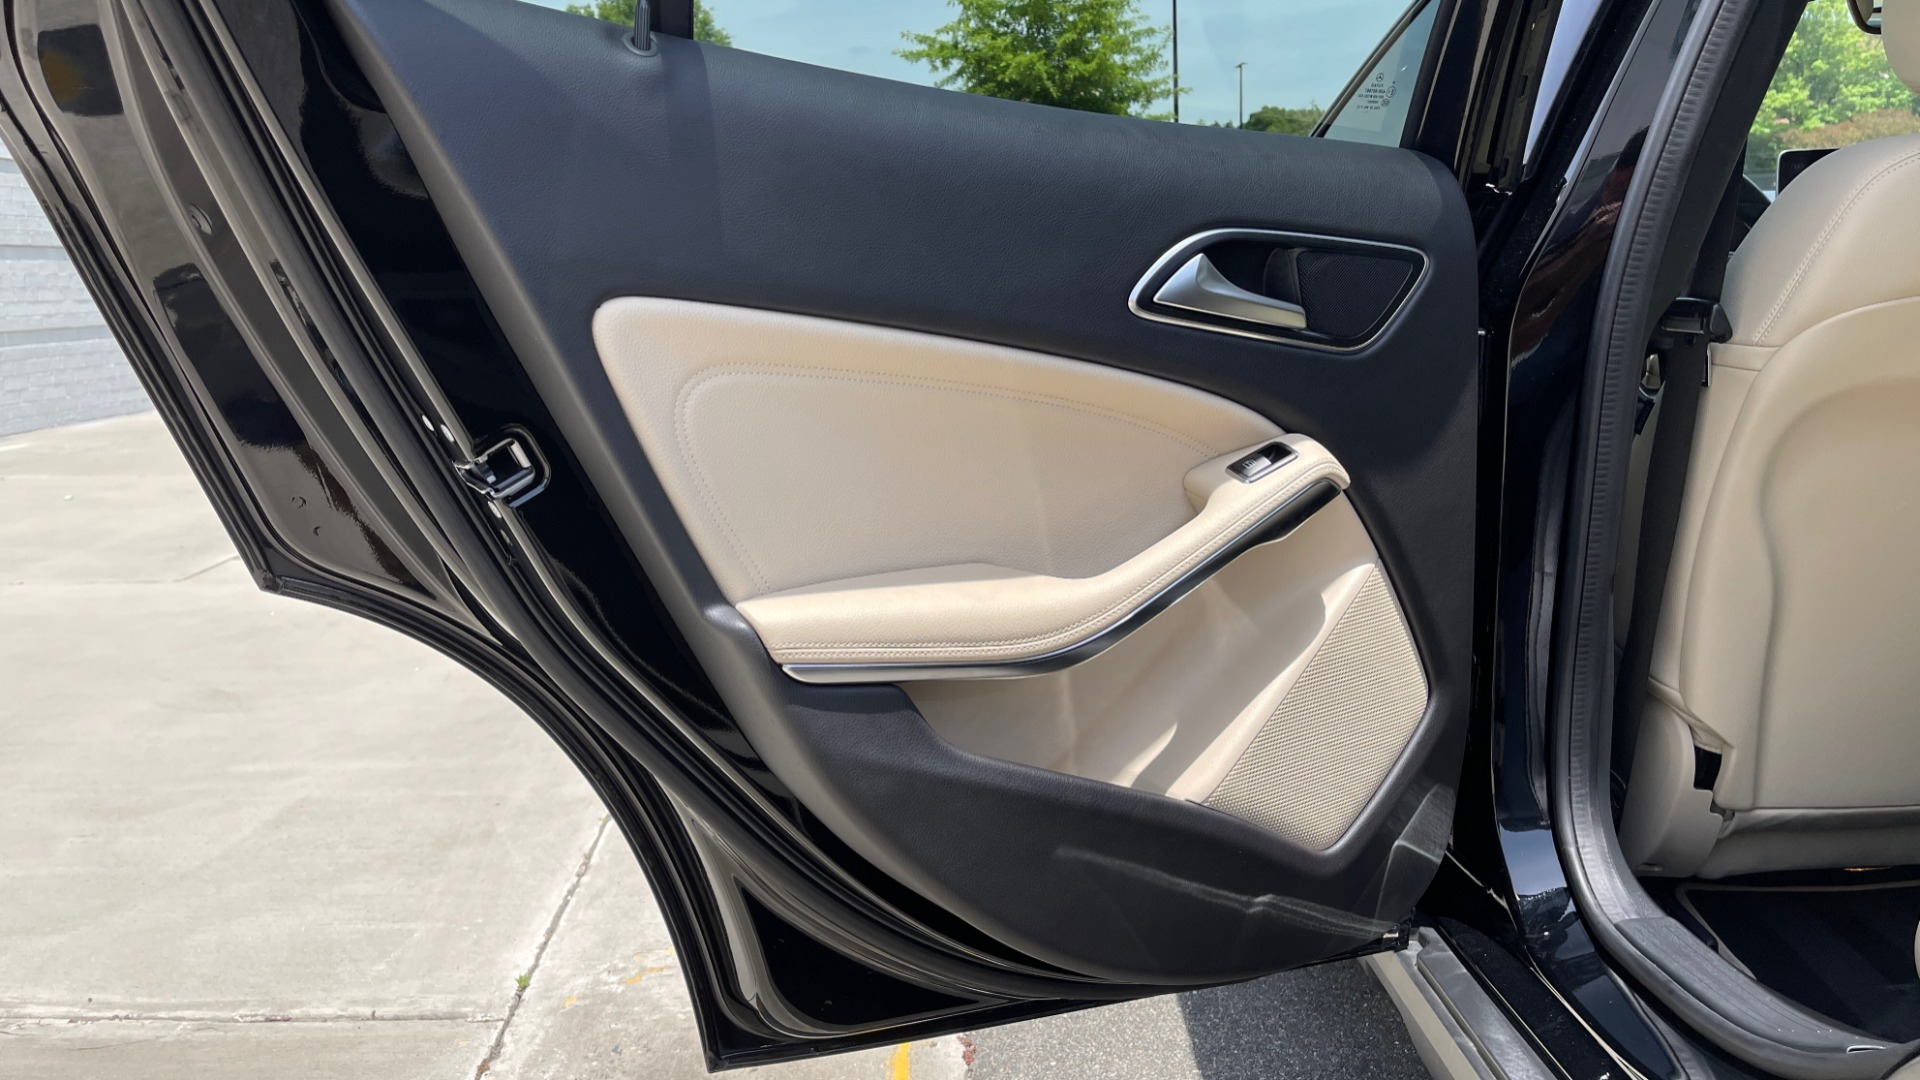 Used 2018 Mercedes-Benz GLA 250 4MATIC SUV / PANO-ROOF / HTD STS / BLIND SPOT ASST / APPLE for sale $31,995 at Formula Imports in Charlotte NC 28227 62